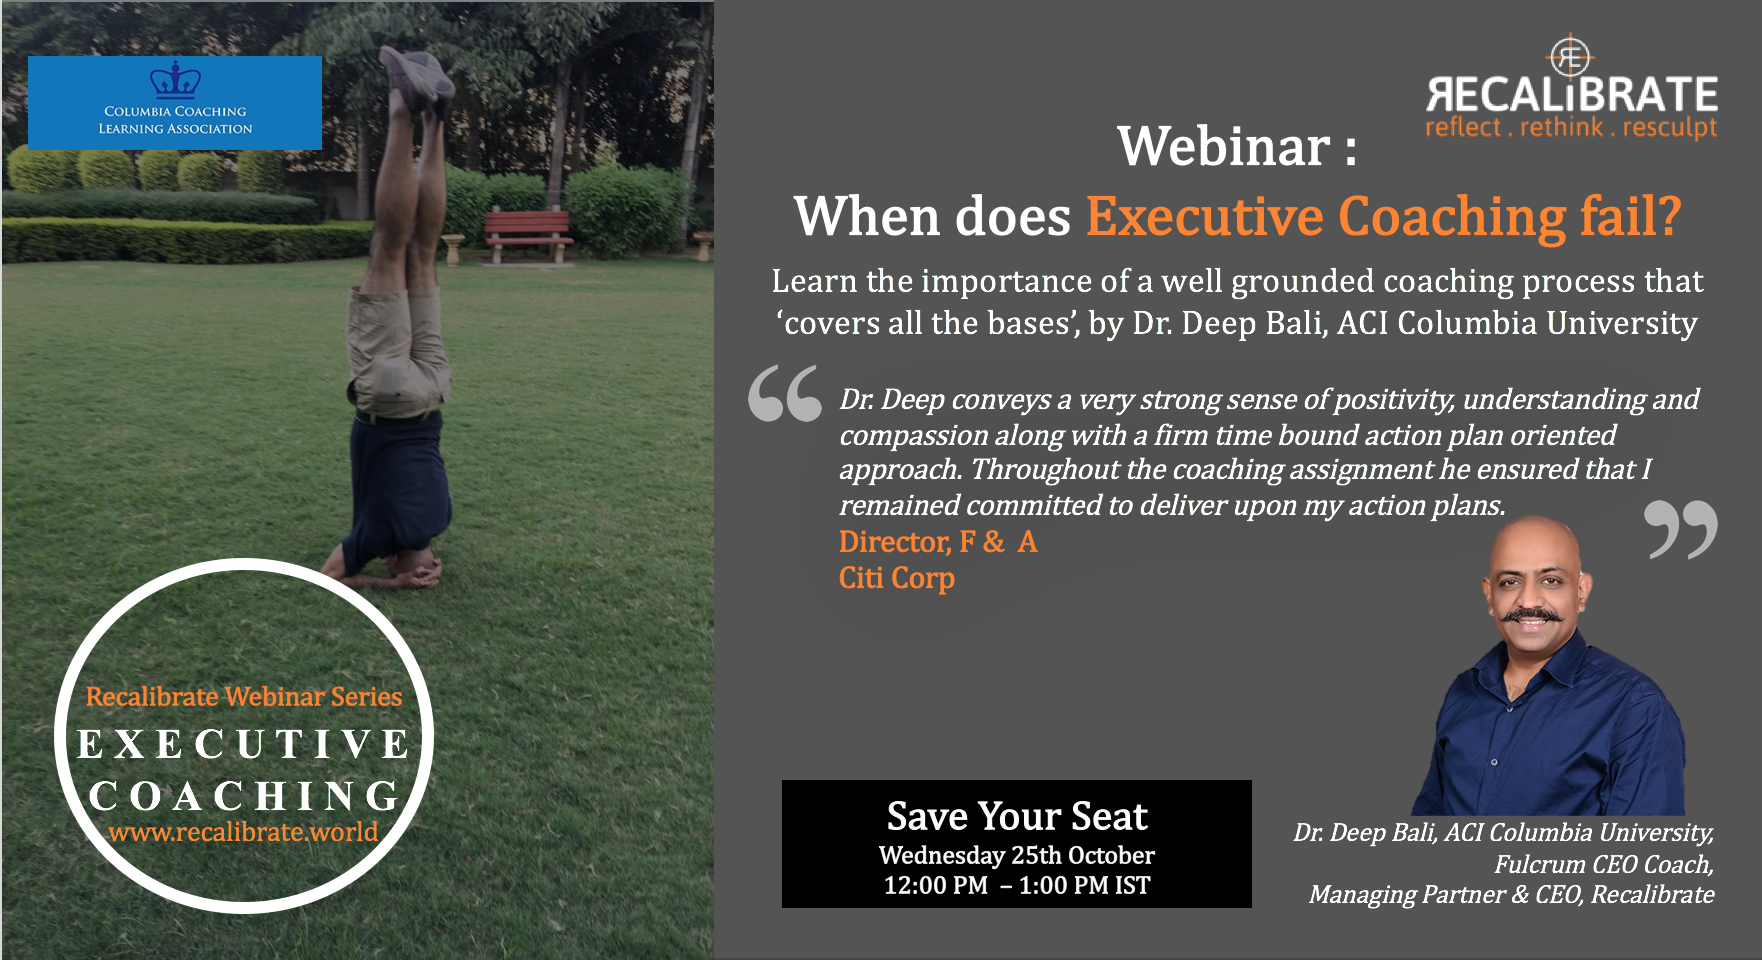 Webinar - When does Executive Coaching Fail